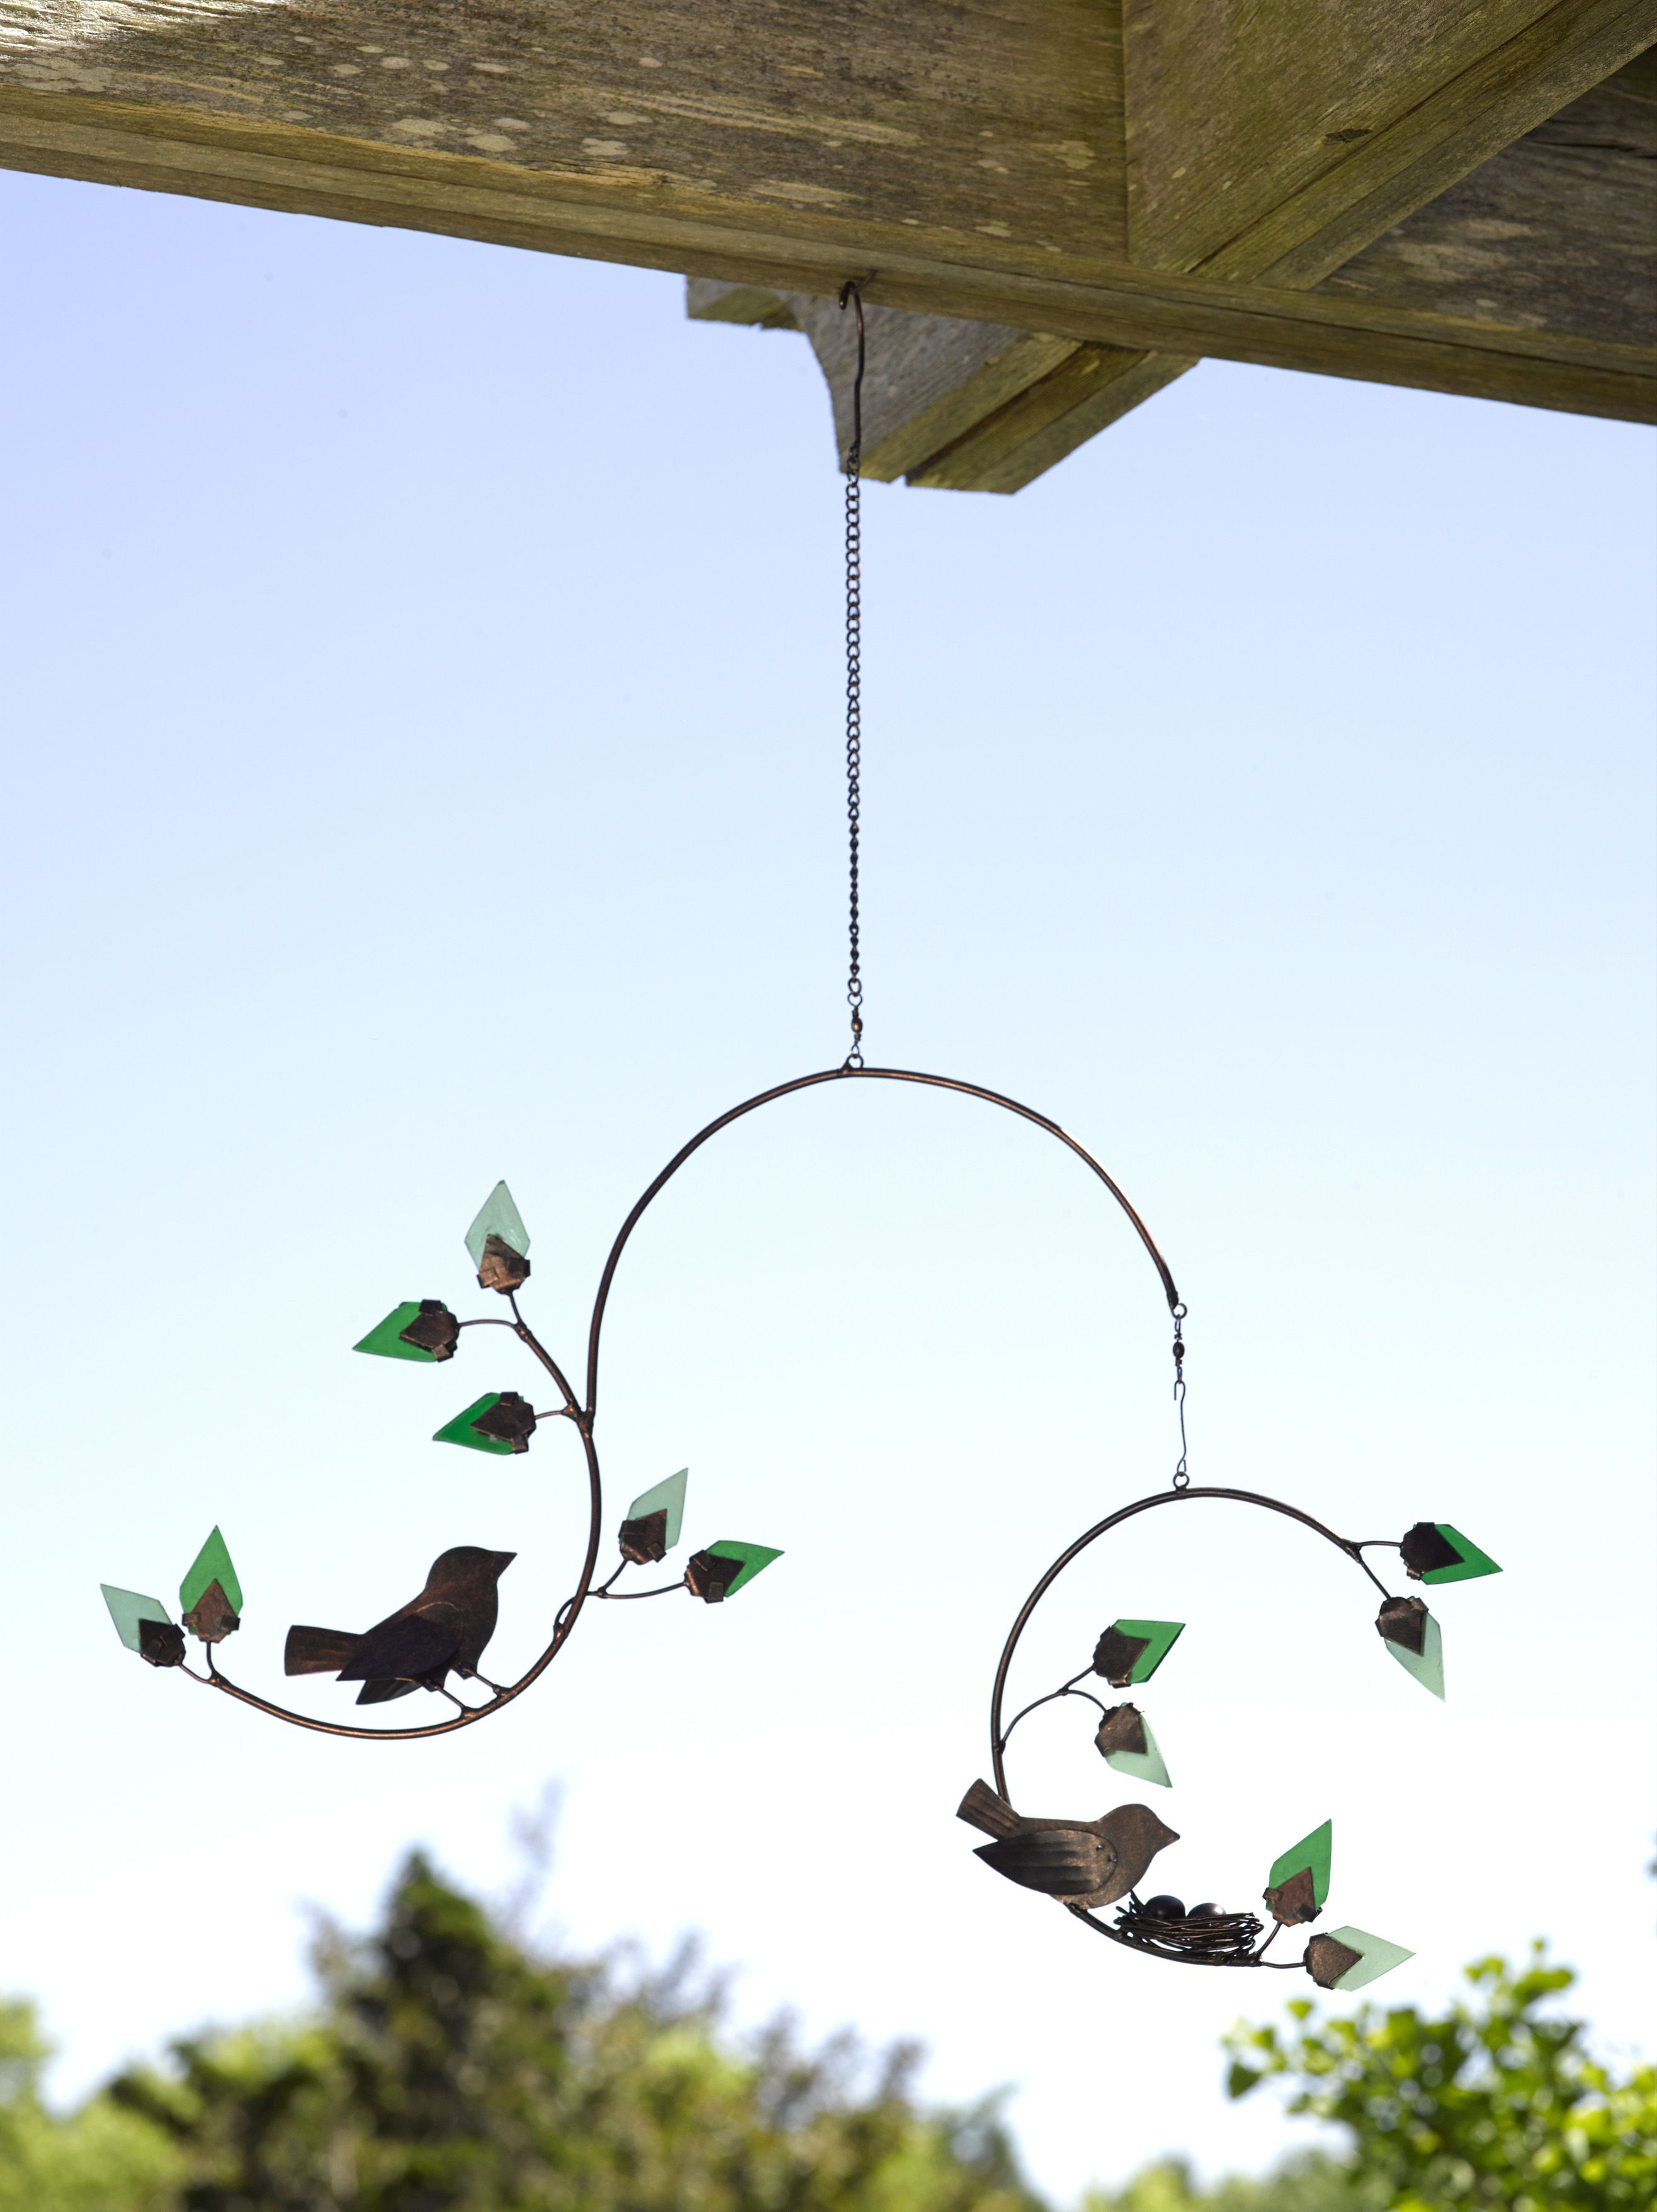 Nesting Bird Mobile with an Aged Copper Finish | Gardeners.com